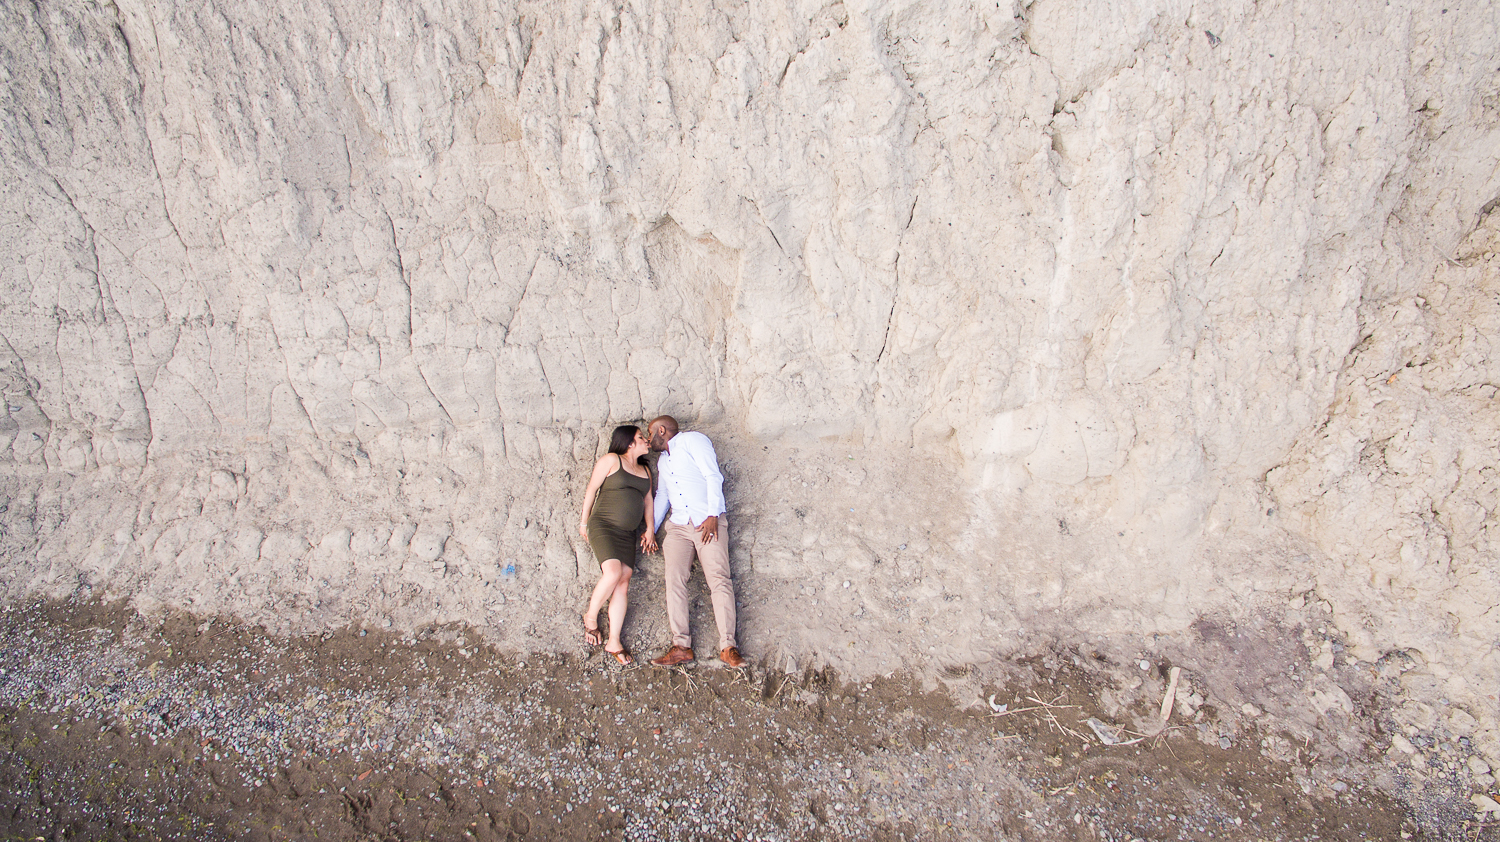 Scarborough-Bluffs-Maternity-Engagement-Shoot-0005.jpg